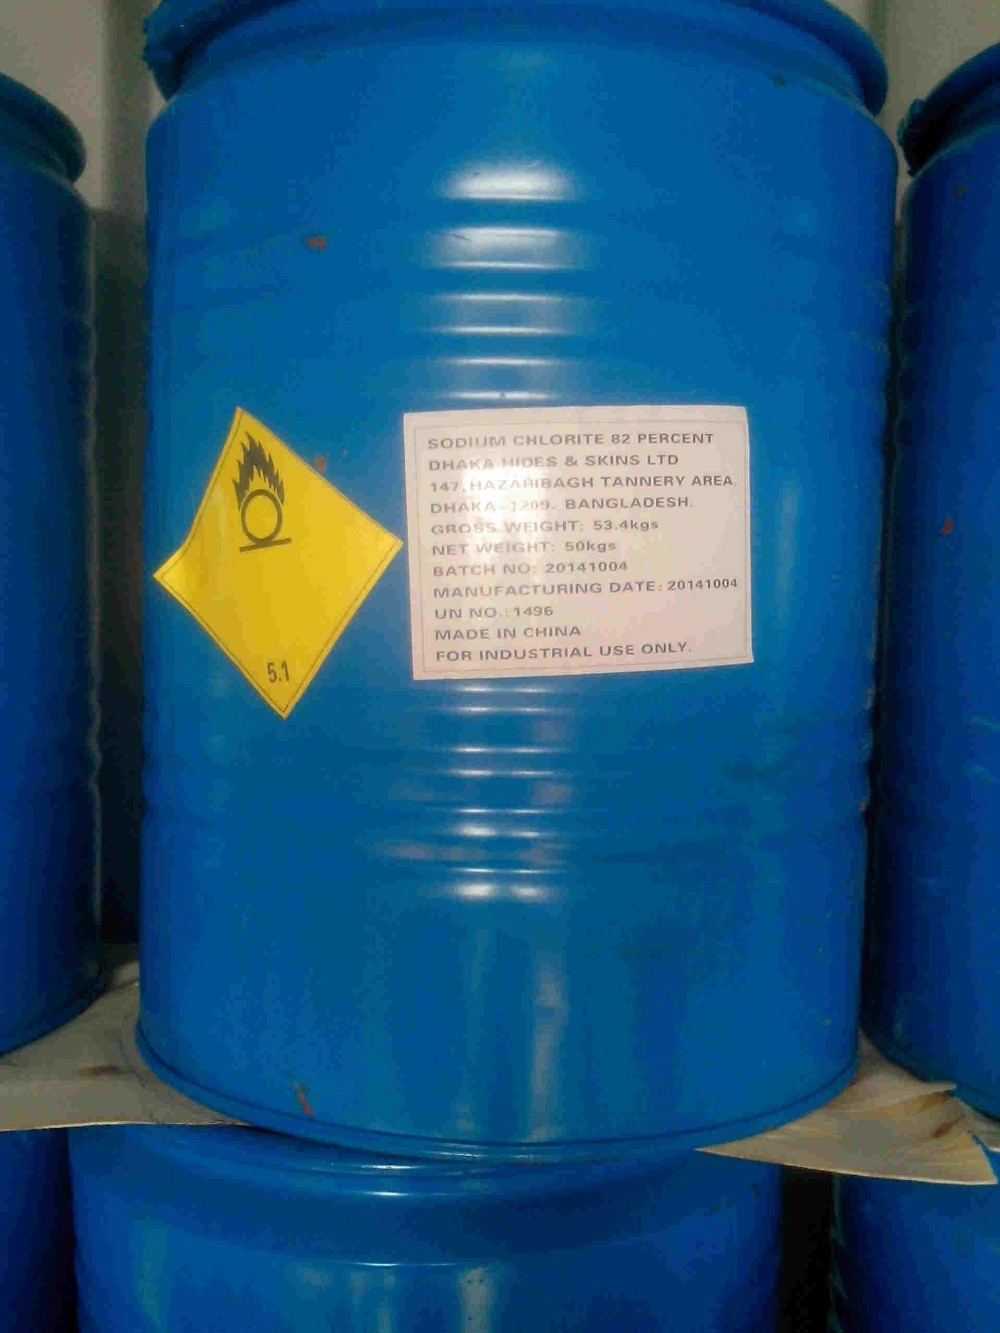 Sodium Chlorite 25% liquid in 2017